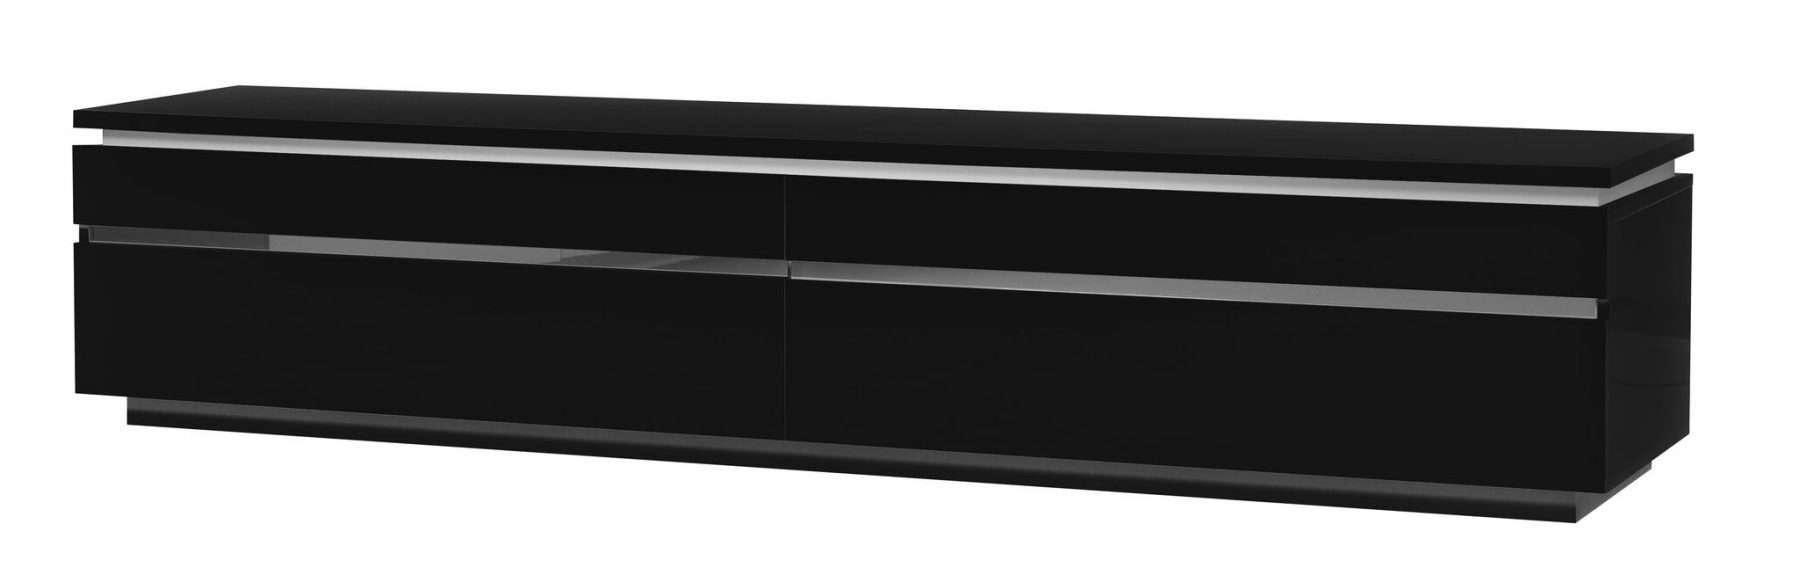 Logan Black Gloss Tv Unit & Lights | Free Delivery | Fads Pertaining To Black Gloss Tv Cabinets (View 12 of 20)